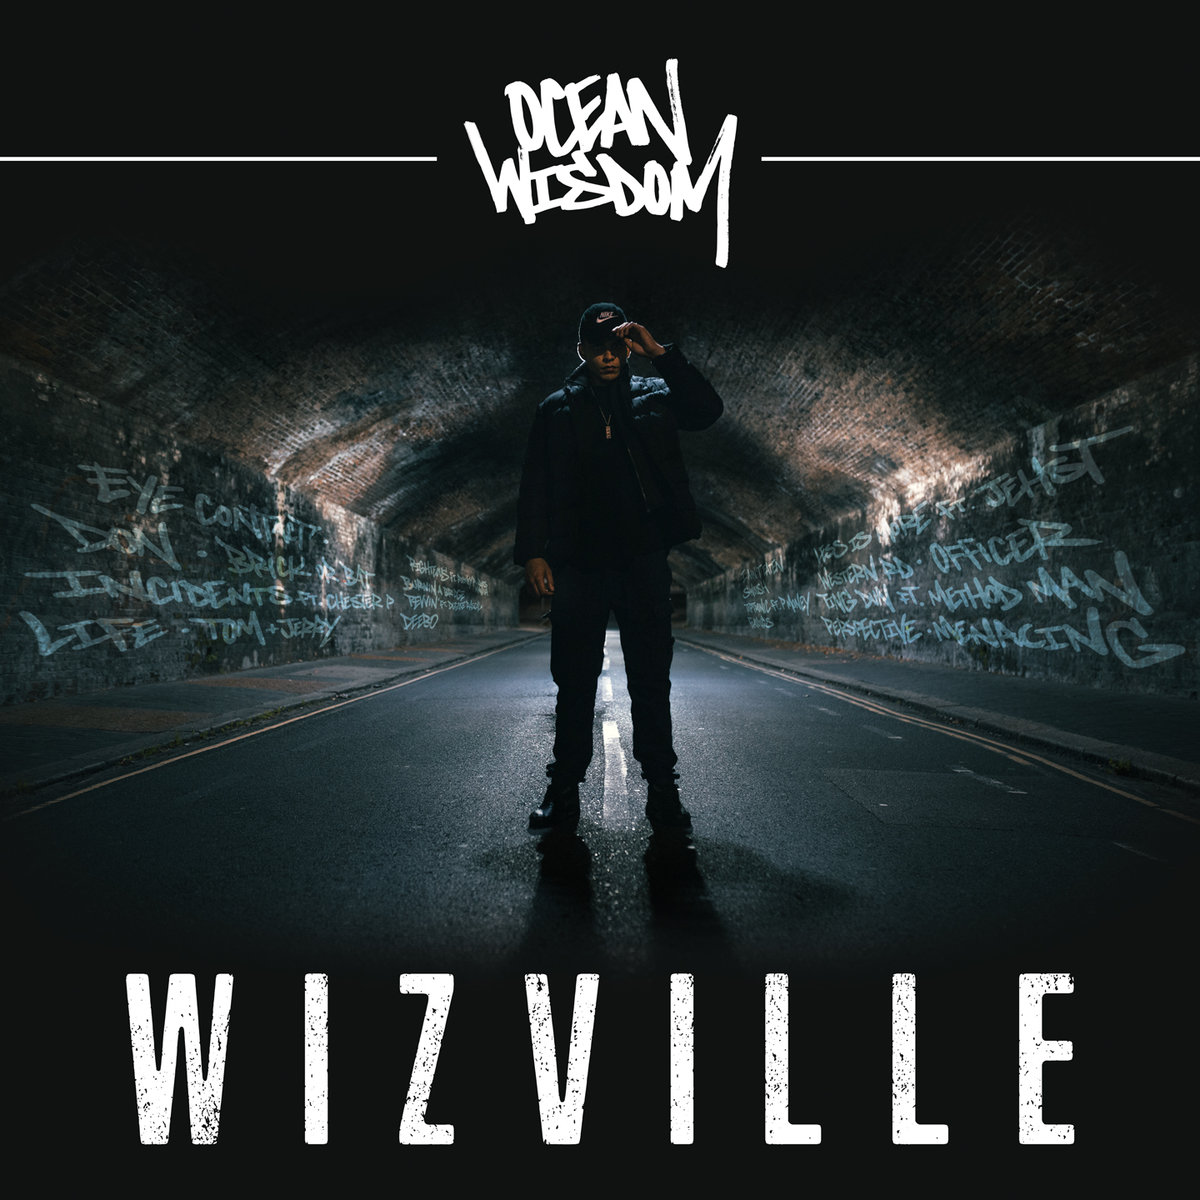 Ocean Wisdom - Wizville (iTunes Stream + Purchase)